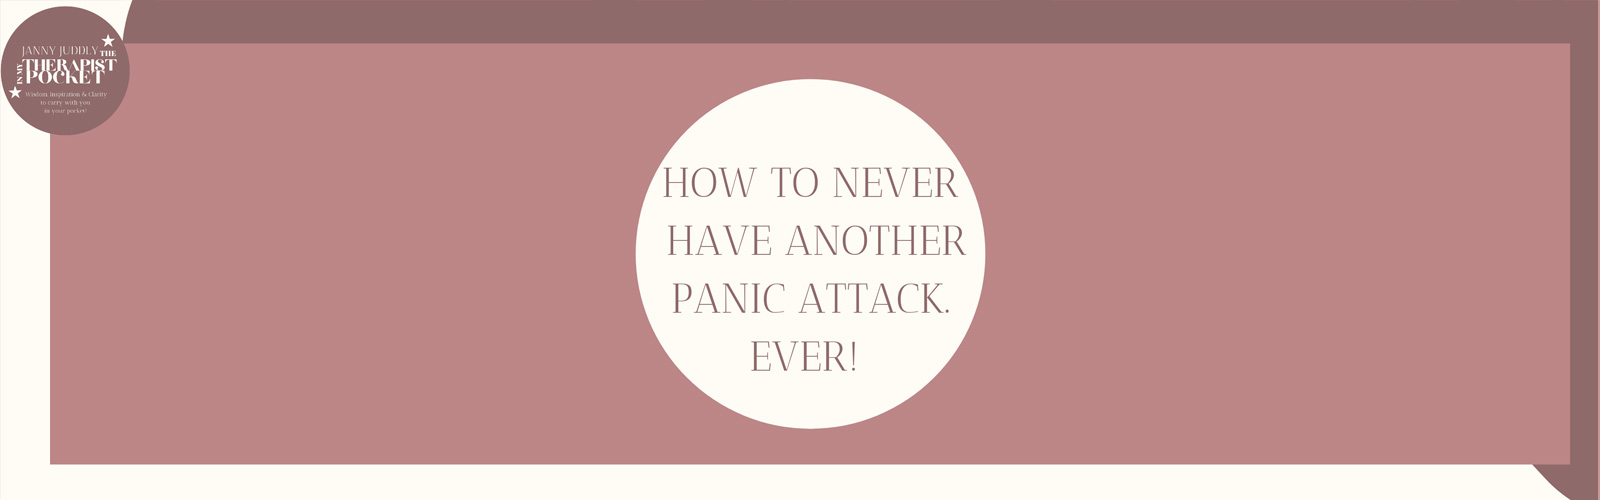 HOW TO NEVER HAVE ANOTHER PANIC ATTACK Catherine's in trouble. It's 3am and it's about to happen again.